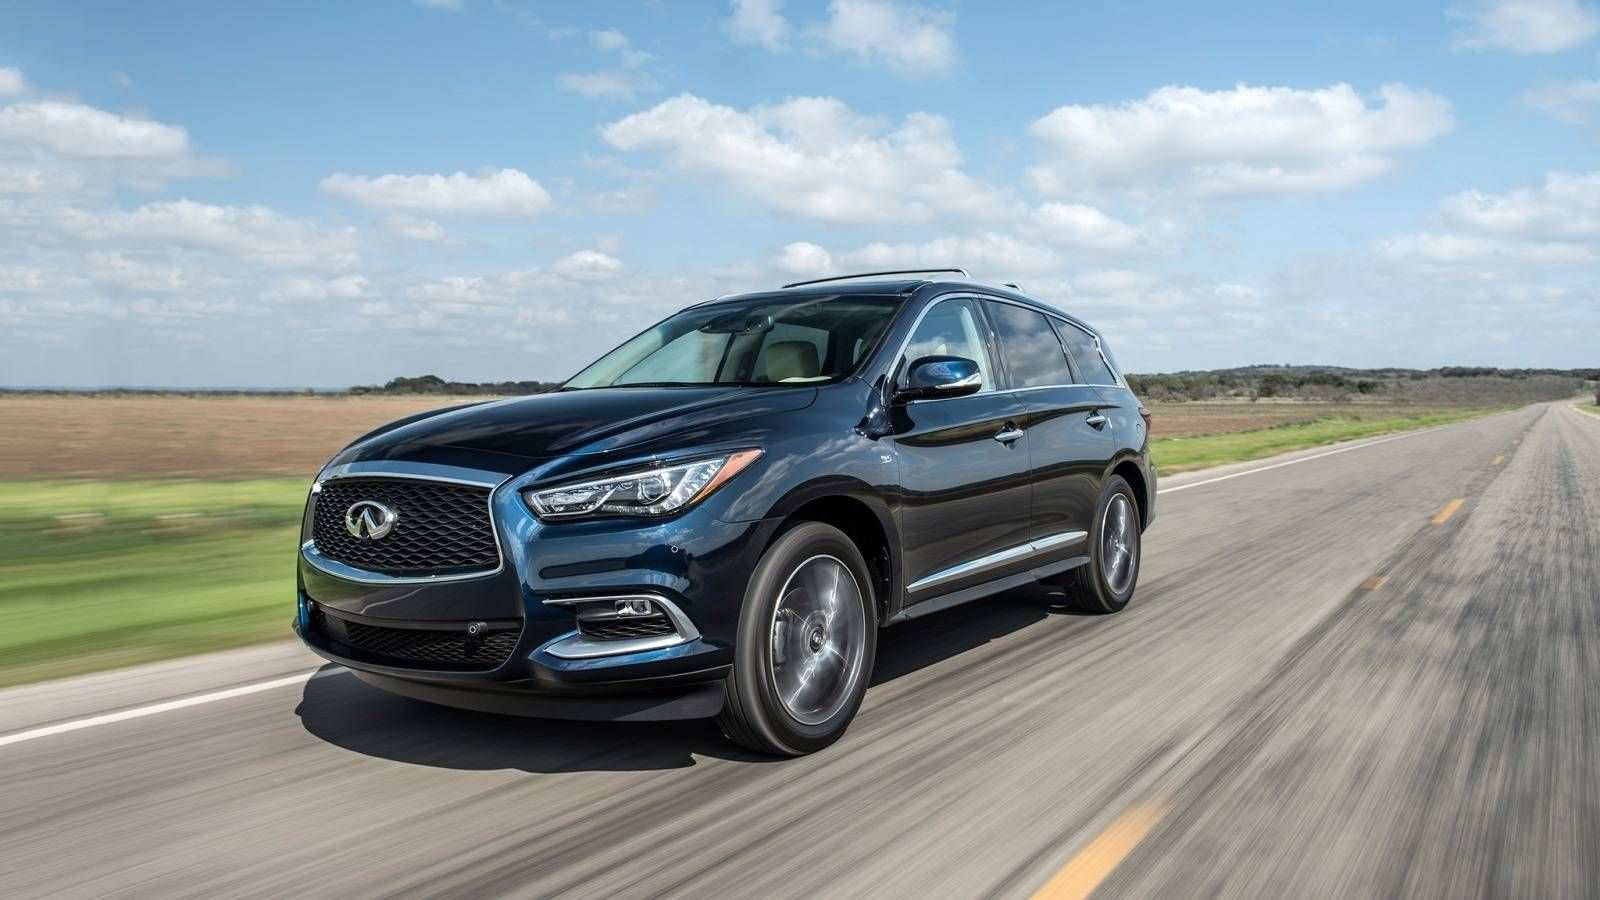 89 All New 2019 Infiniti Qx50 Edmunds Pictures with 2019 Infiniti Qx50 Edmunds